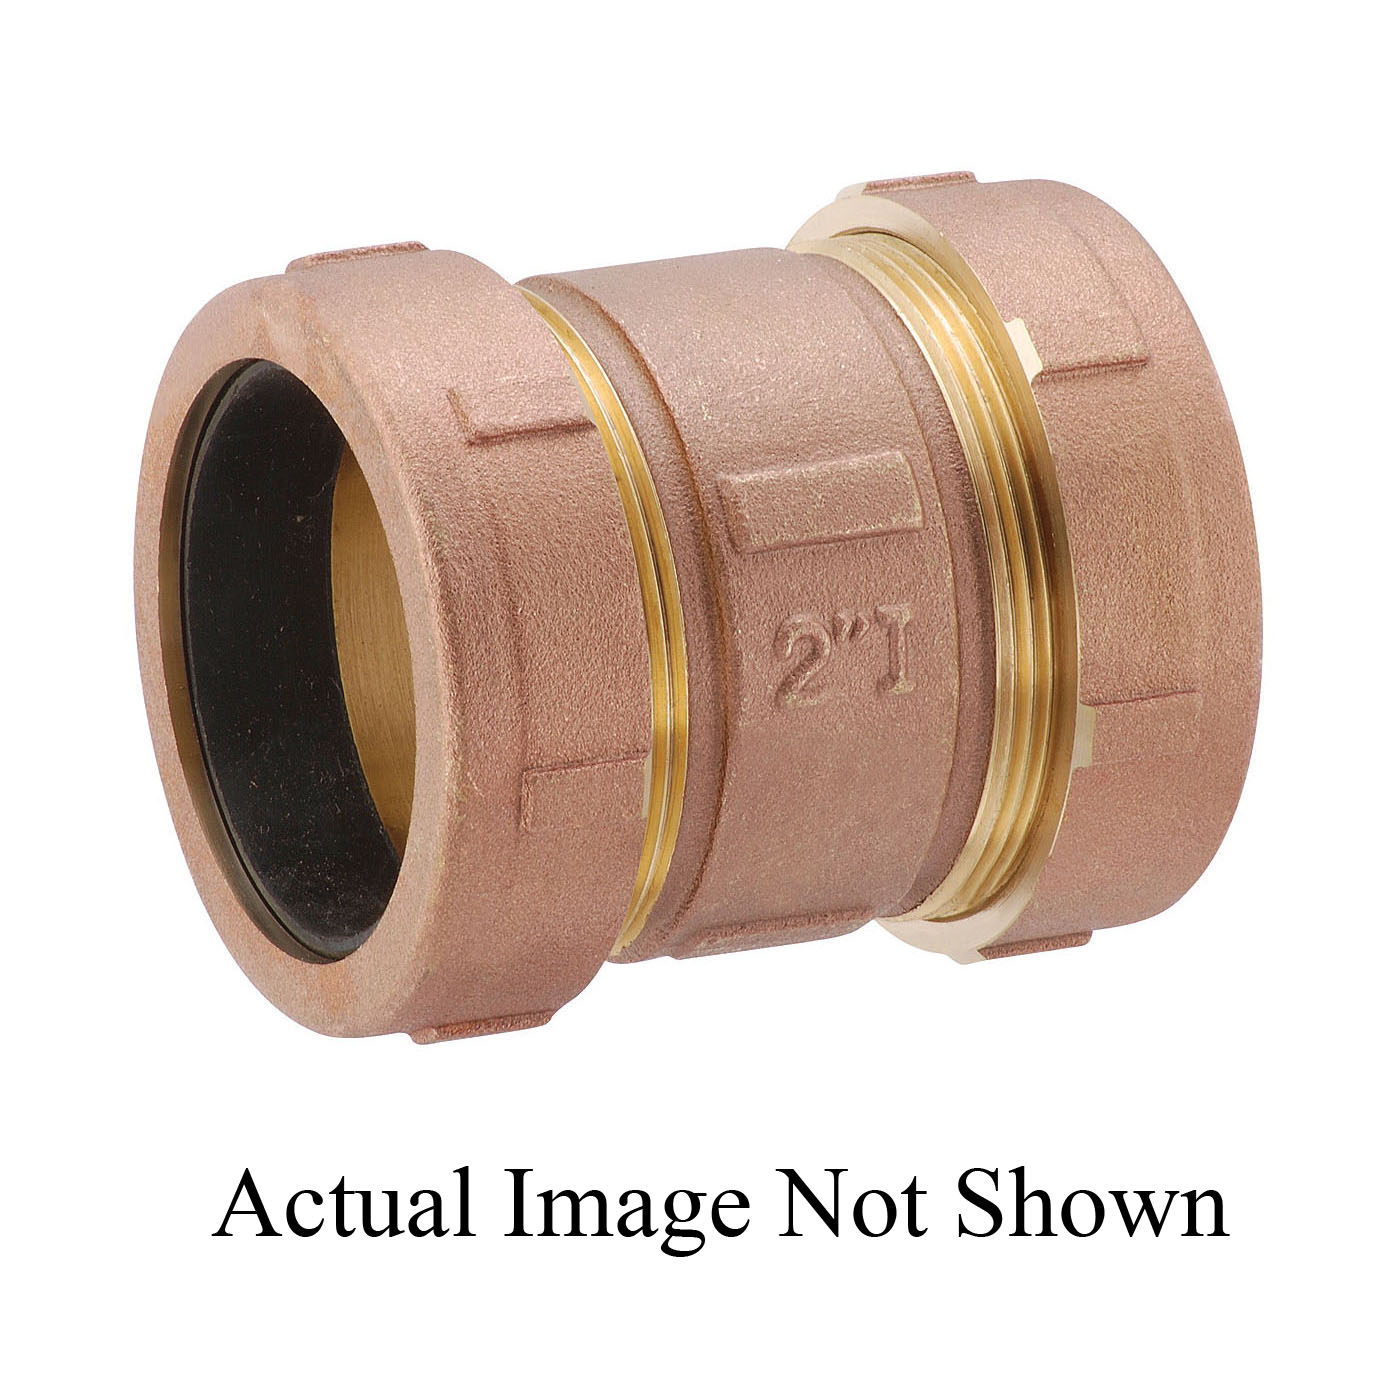 Matco-Norca™ 450T07LF Short Compression Coupling, 1-1/2 in, IPS x CTS, Brass